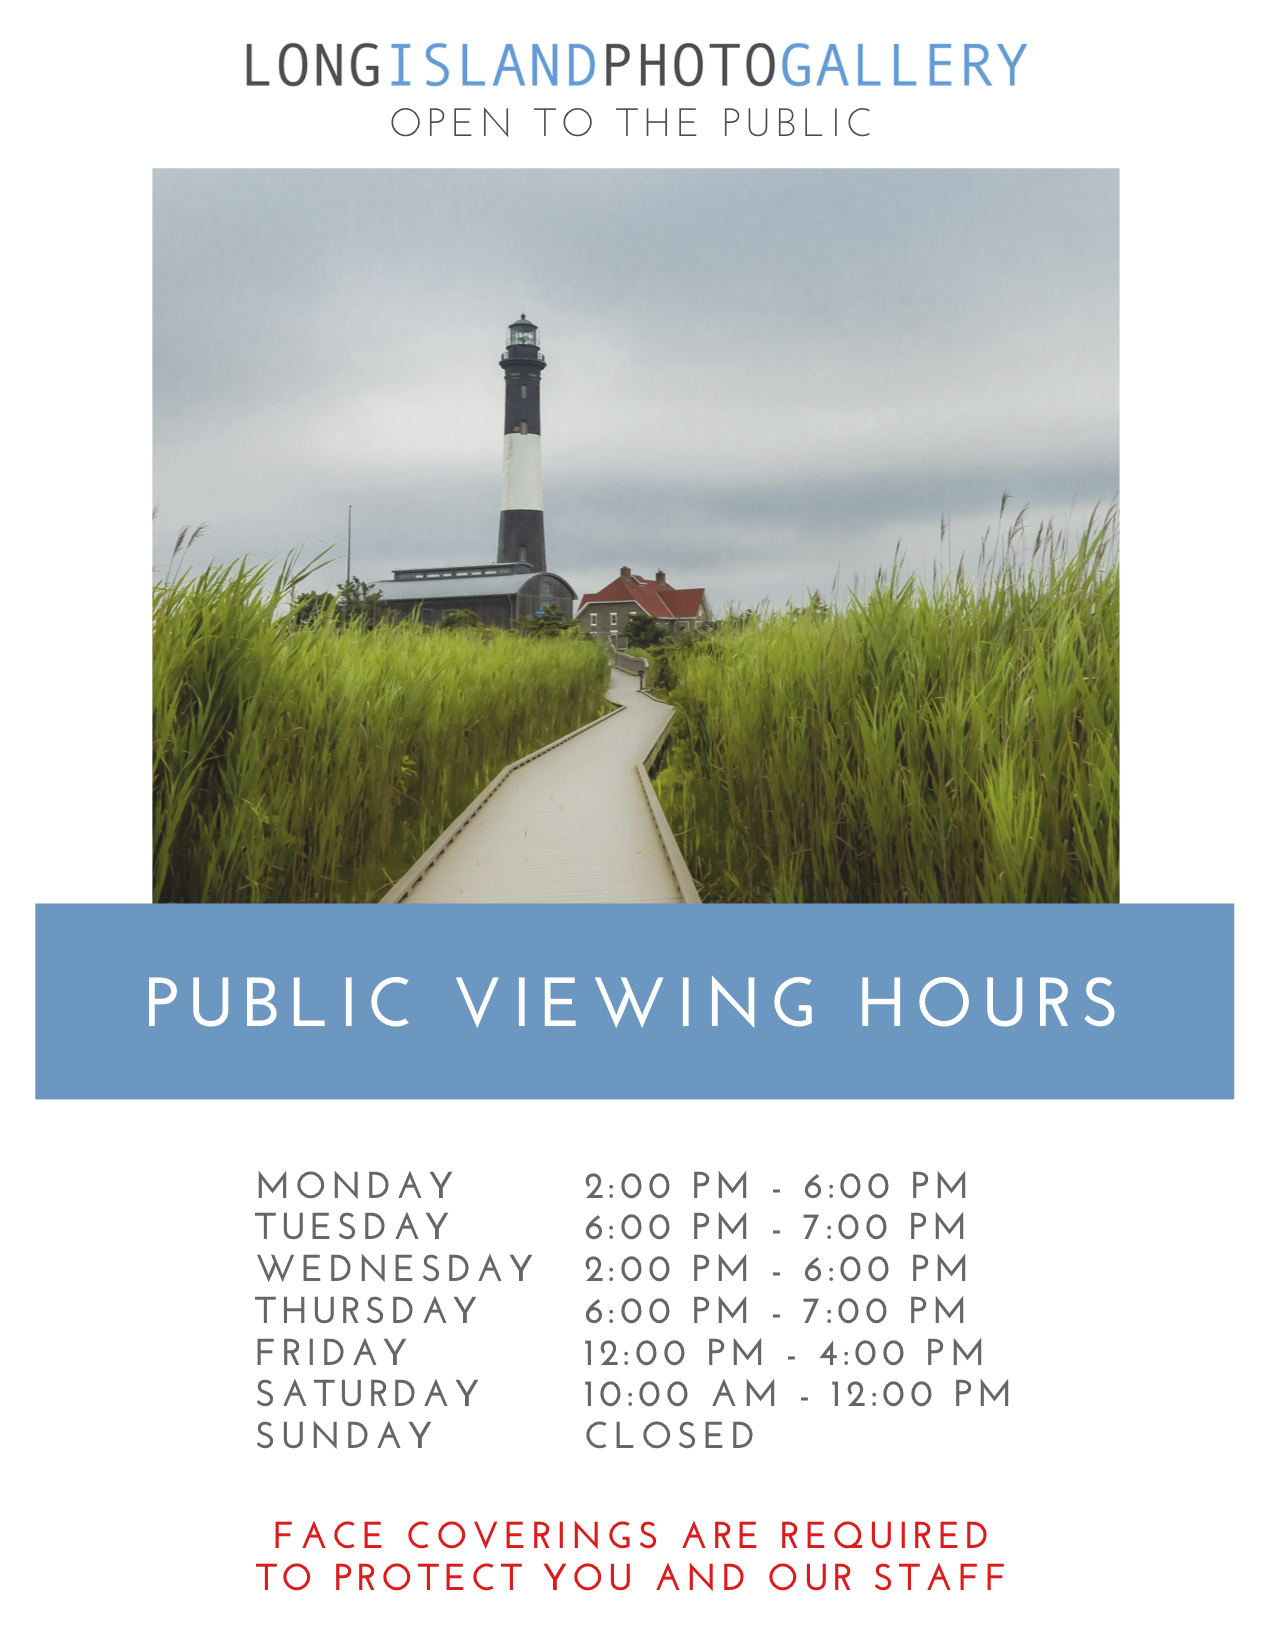 Please come in a browse, shop, and help to support local artists. Long Island Photo Gallery is always open to the general public and is committed to representing award-winning professional and emerging artists in photography.